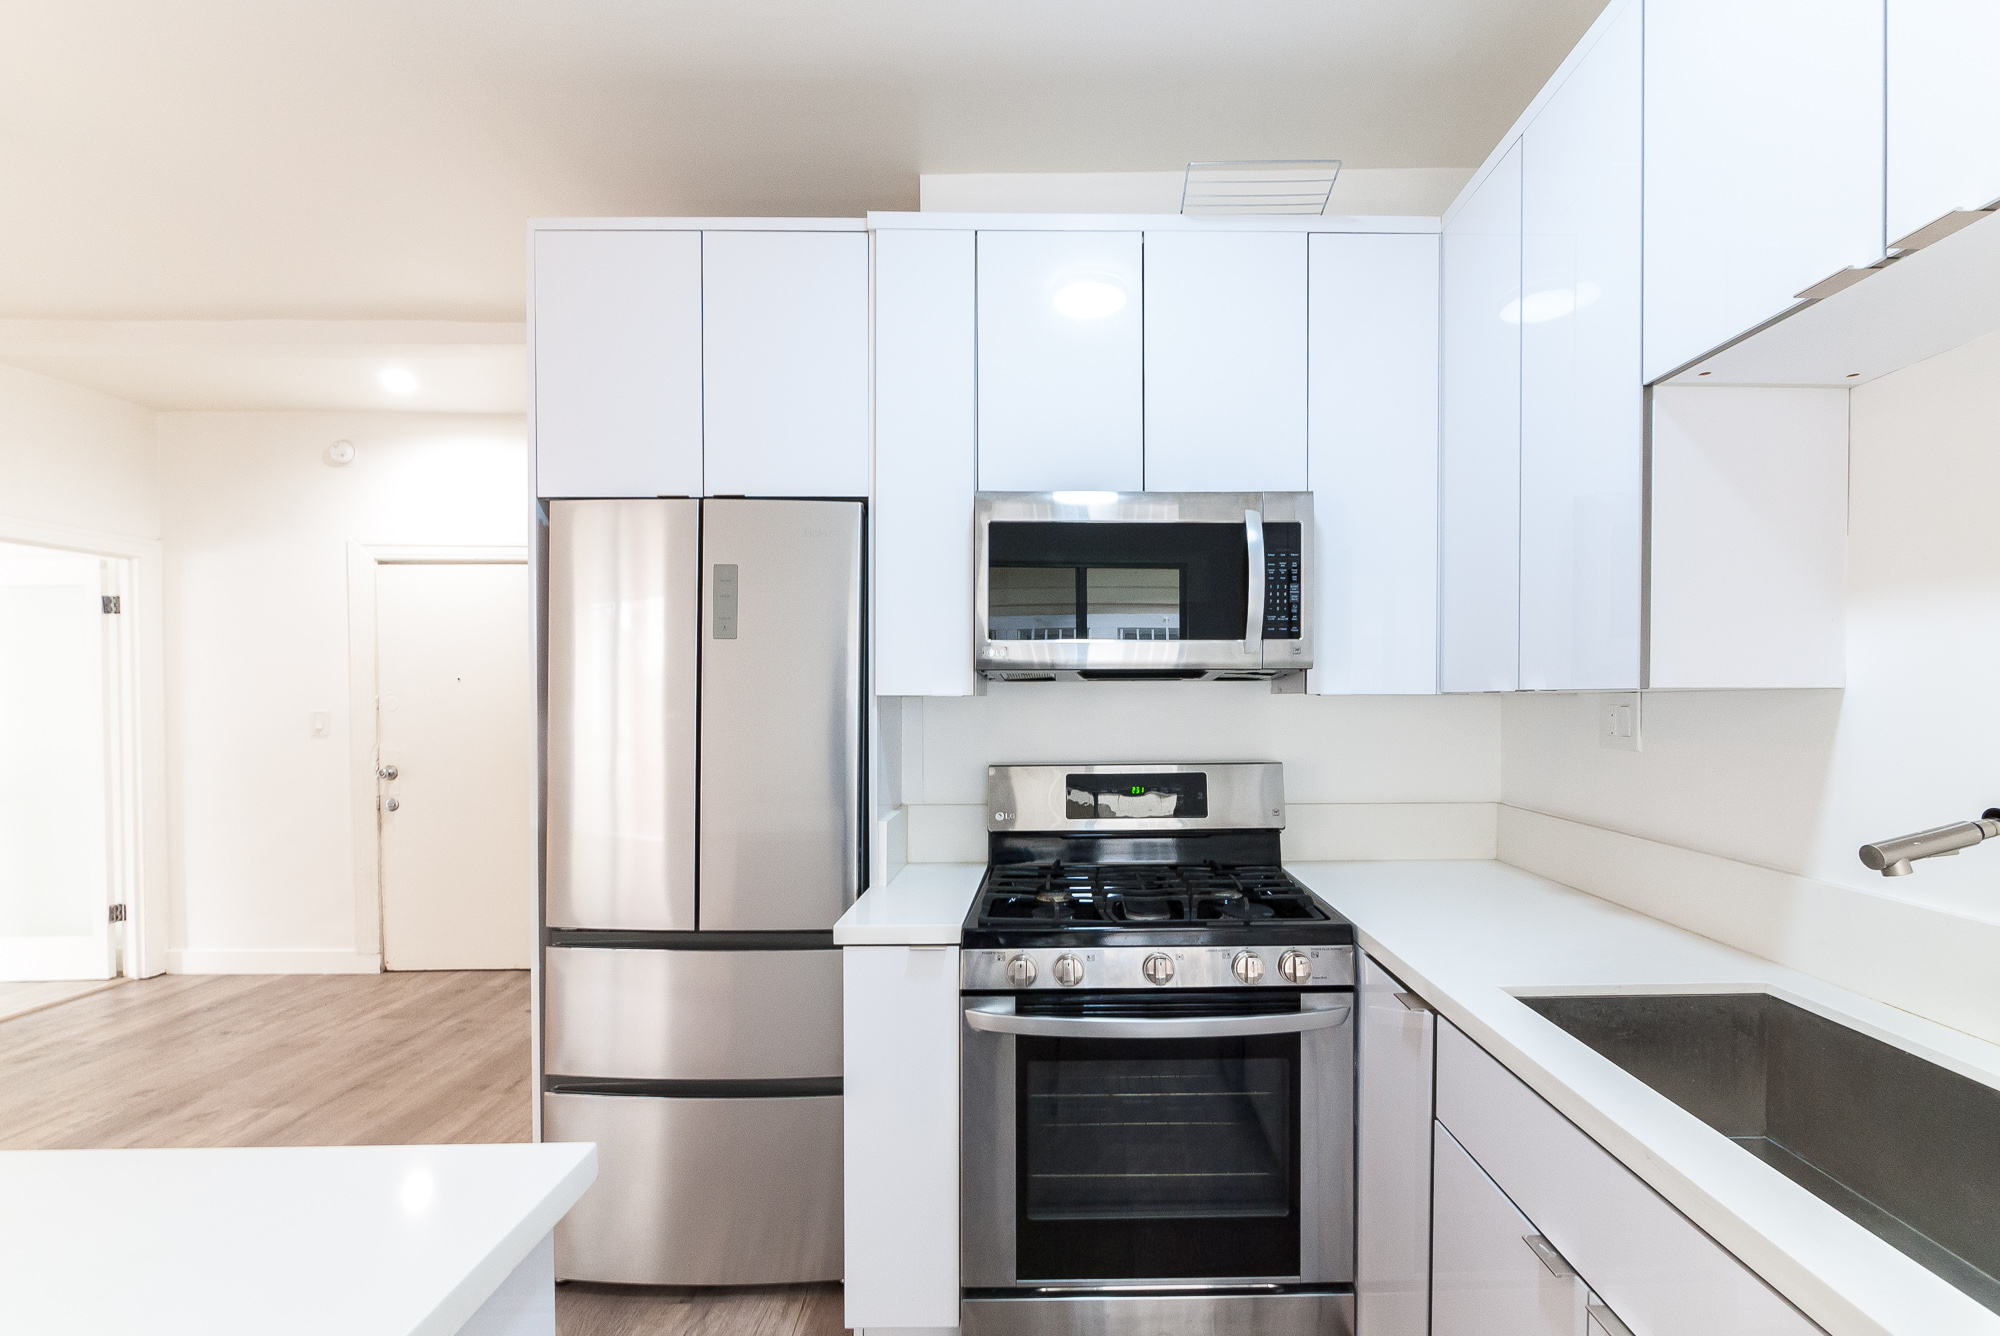 SUPER Lux! Brand New Reno 1B- INSTA worthy Kitchen- Gorgeous Tiled Bathroom -Surrounded By Windows-Free Lyft Credit!